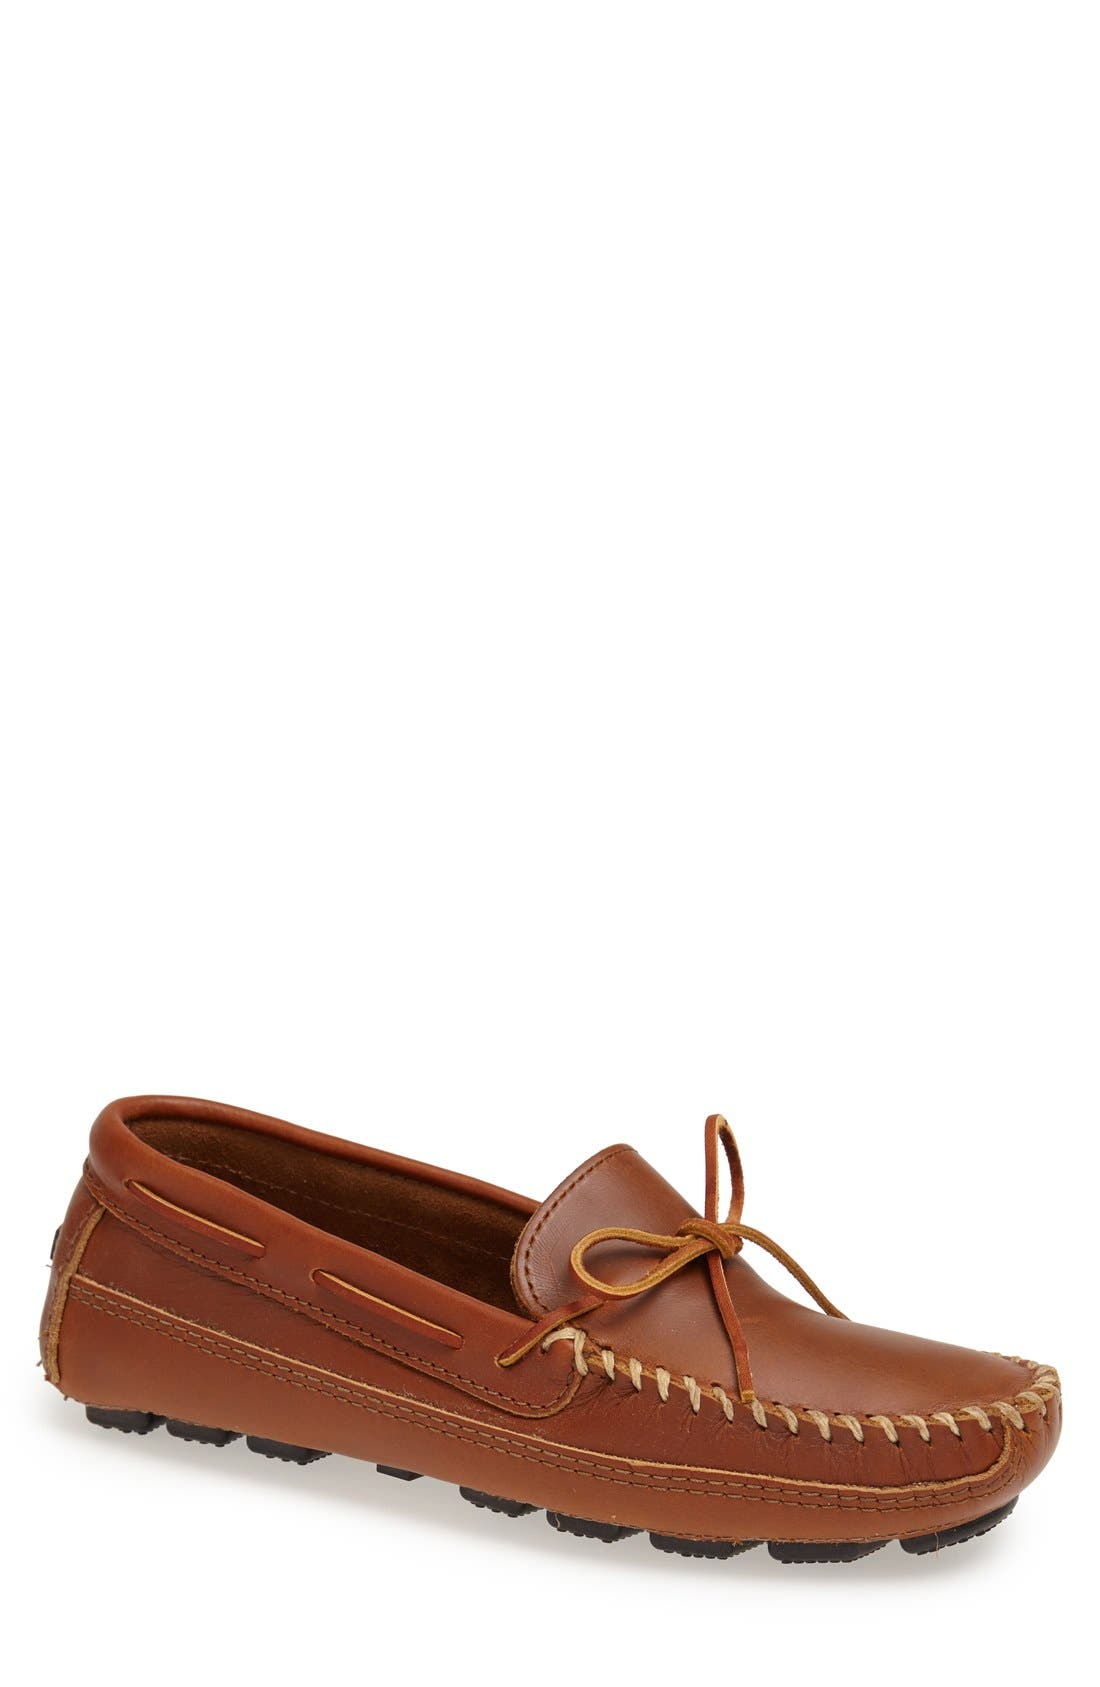 MINNETONKA Leather Driving Shoe